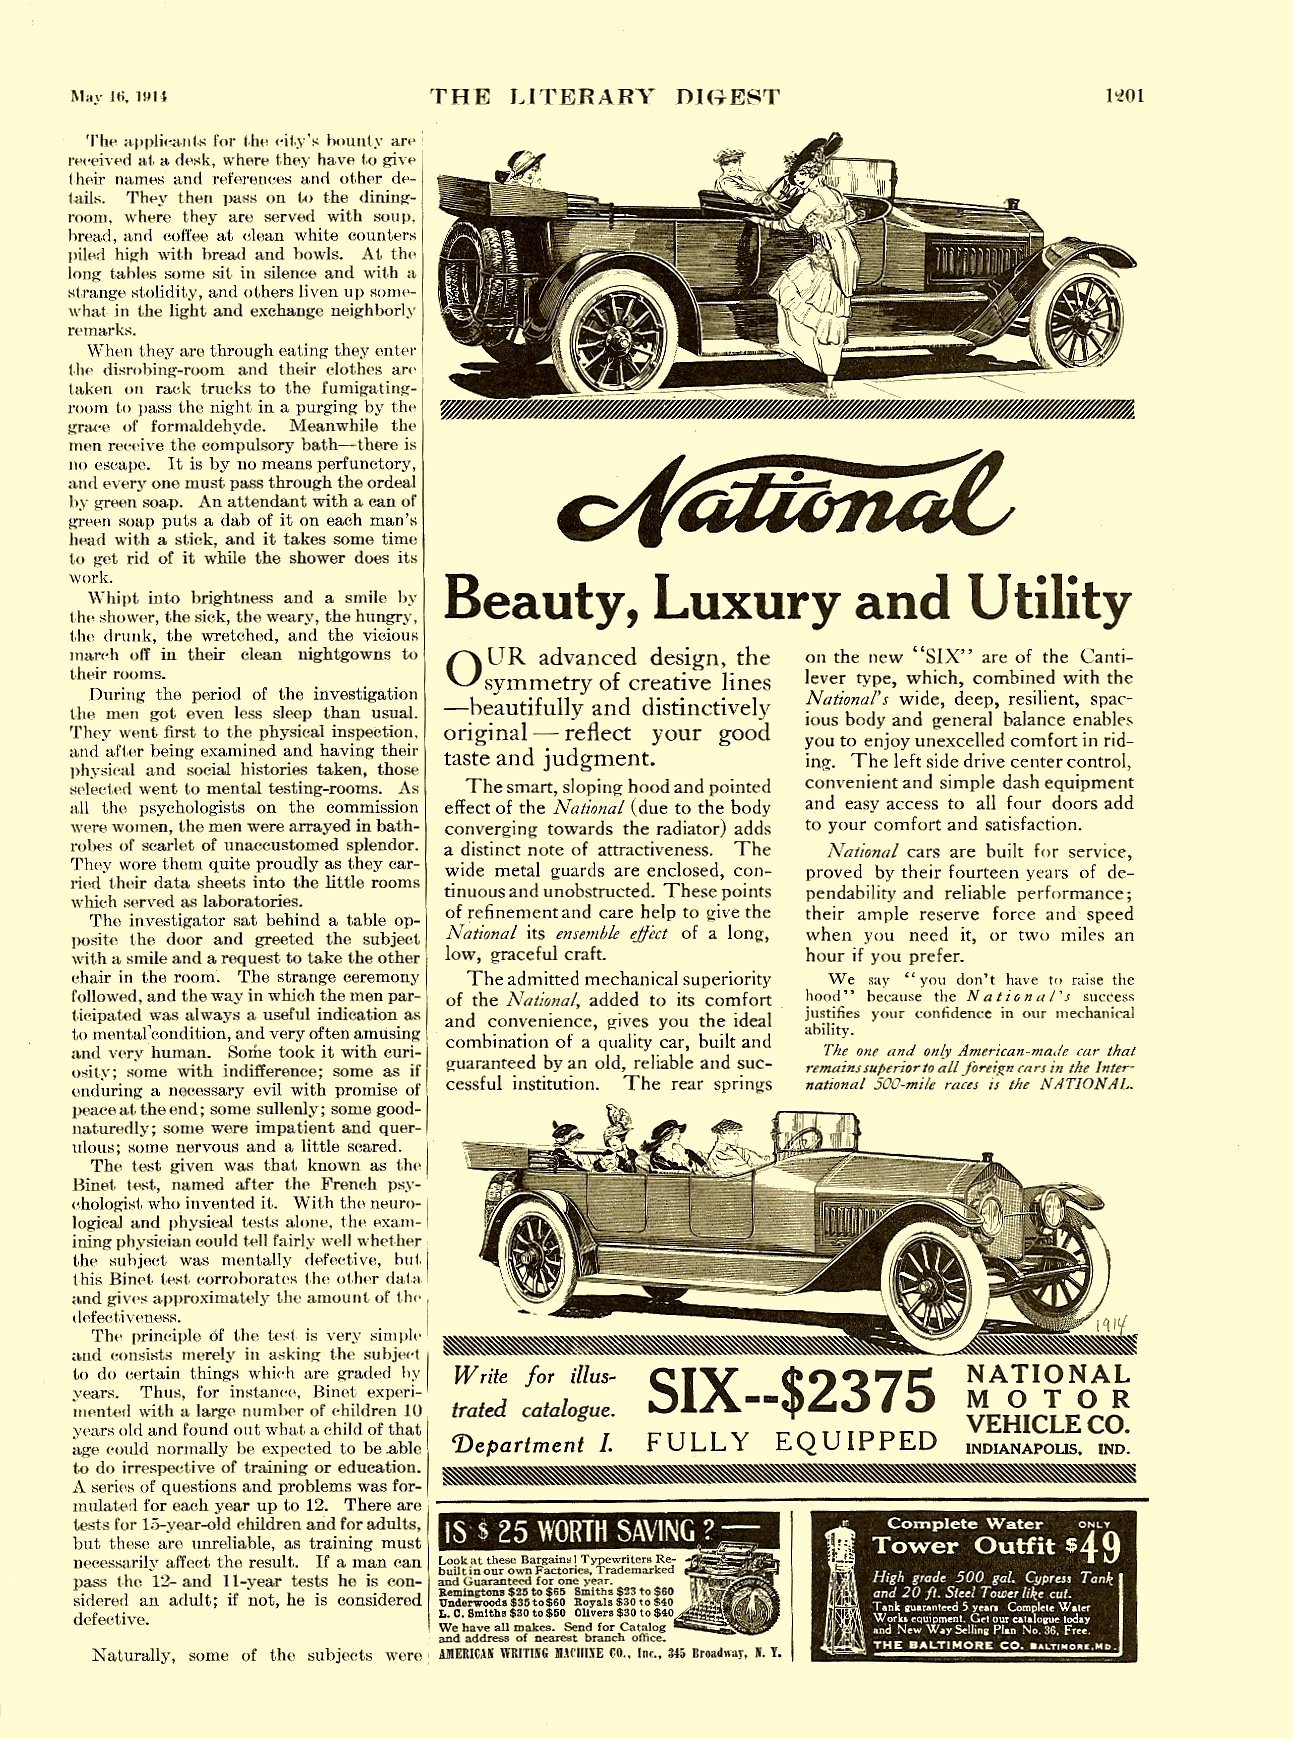 1914 5 16 NATIONAL Beauty, Luxury and Utility LITERARY DIGEST May 16, 1914 8.5″x11.5″ page 1201